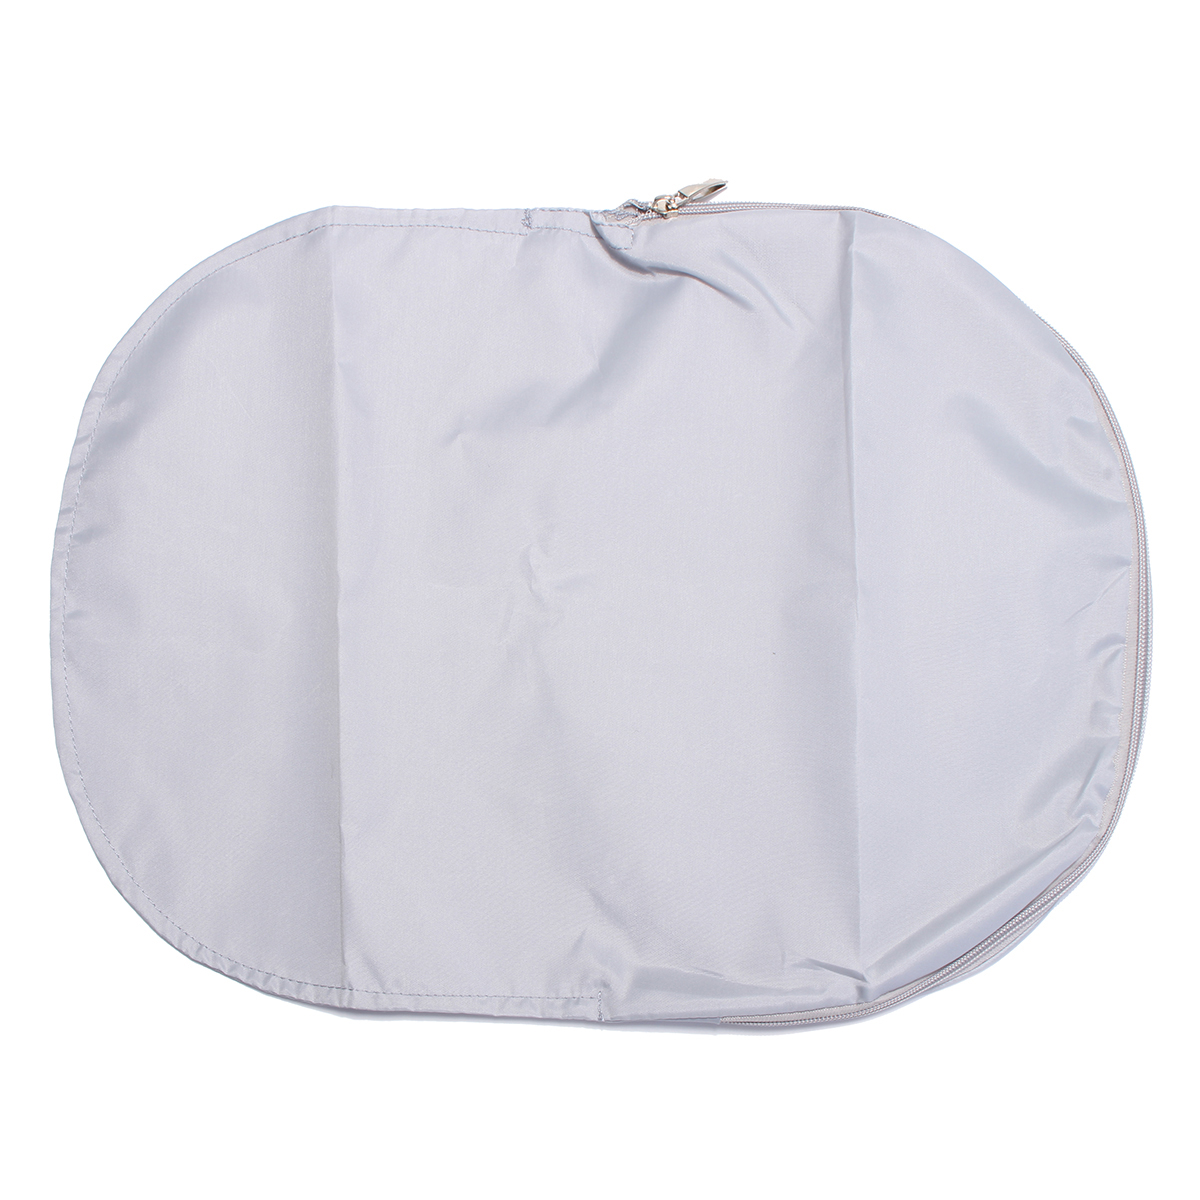 Phoropter Dust Cover Grey Color Optometry Unit Protective Cover